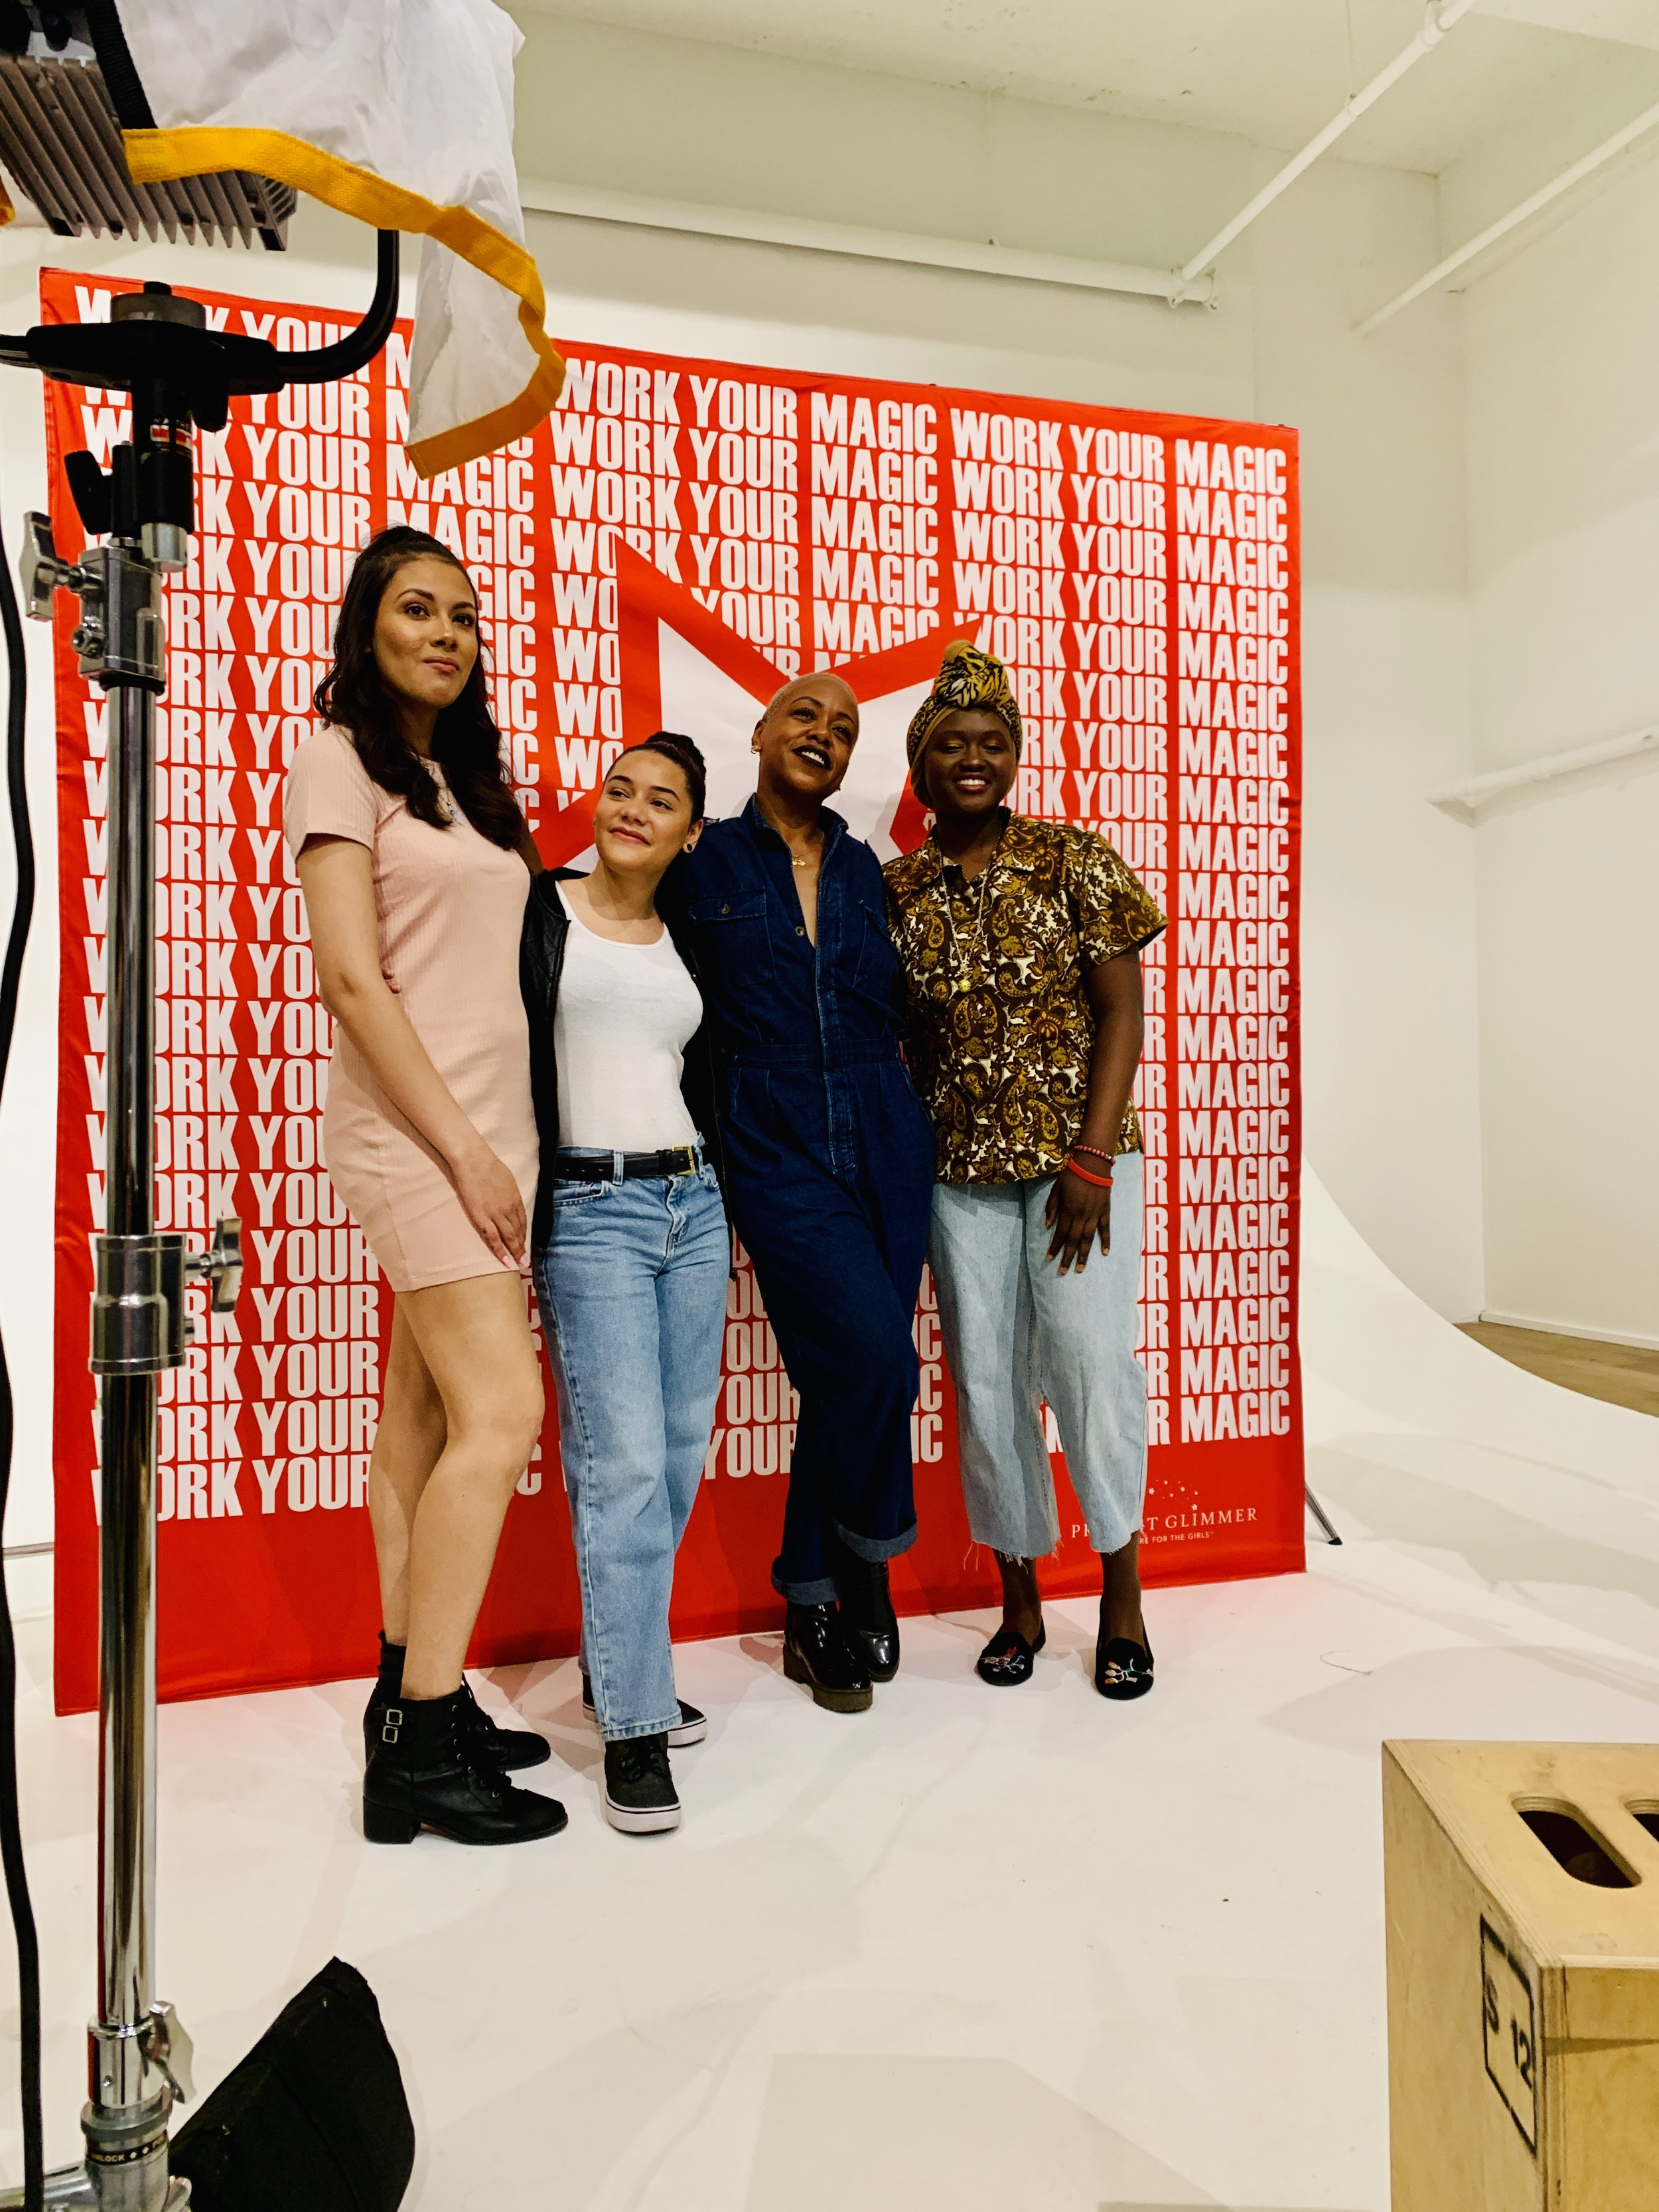 Mentor Manushka Magloire of Afropunk poses with Day of Empowerment attendees in front of the step & repeat wall.